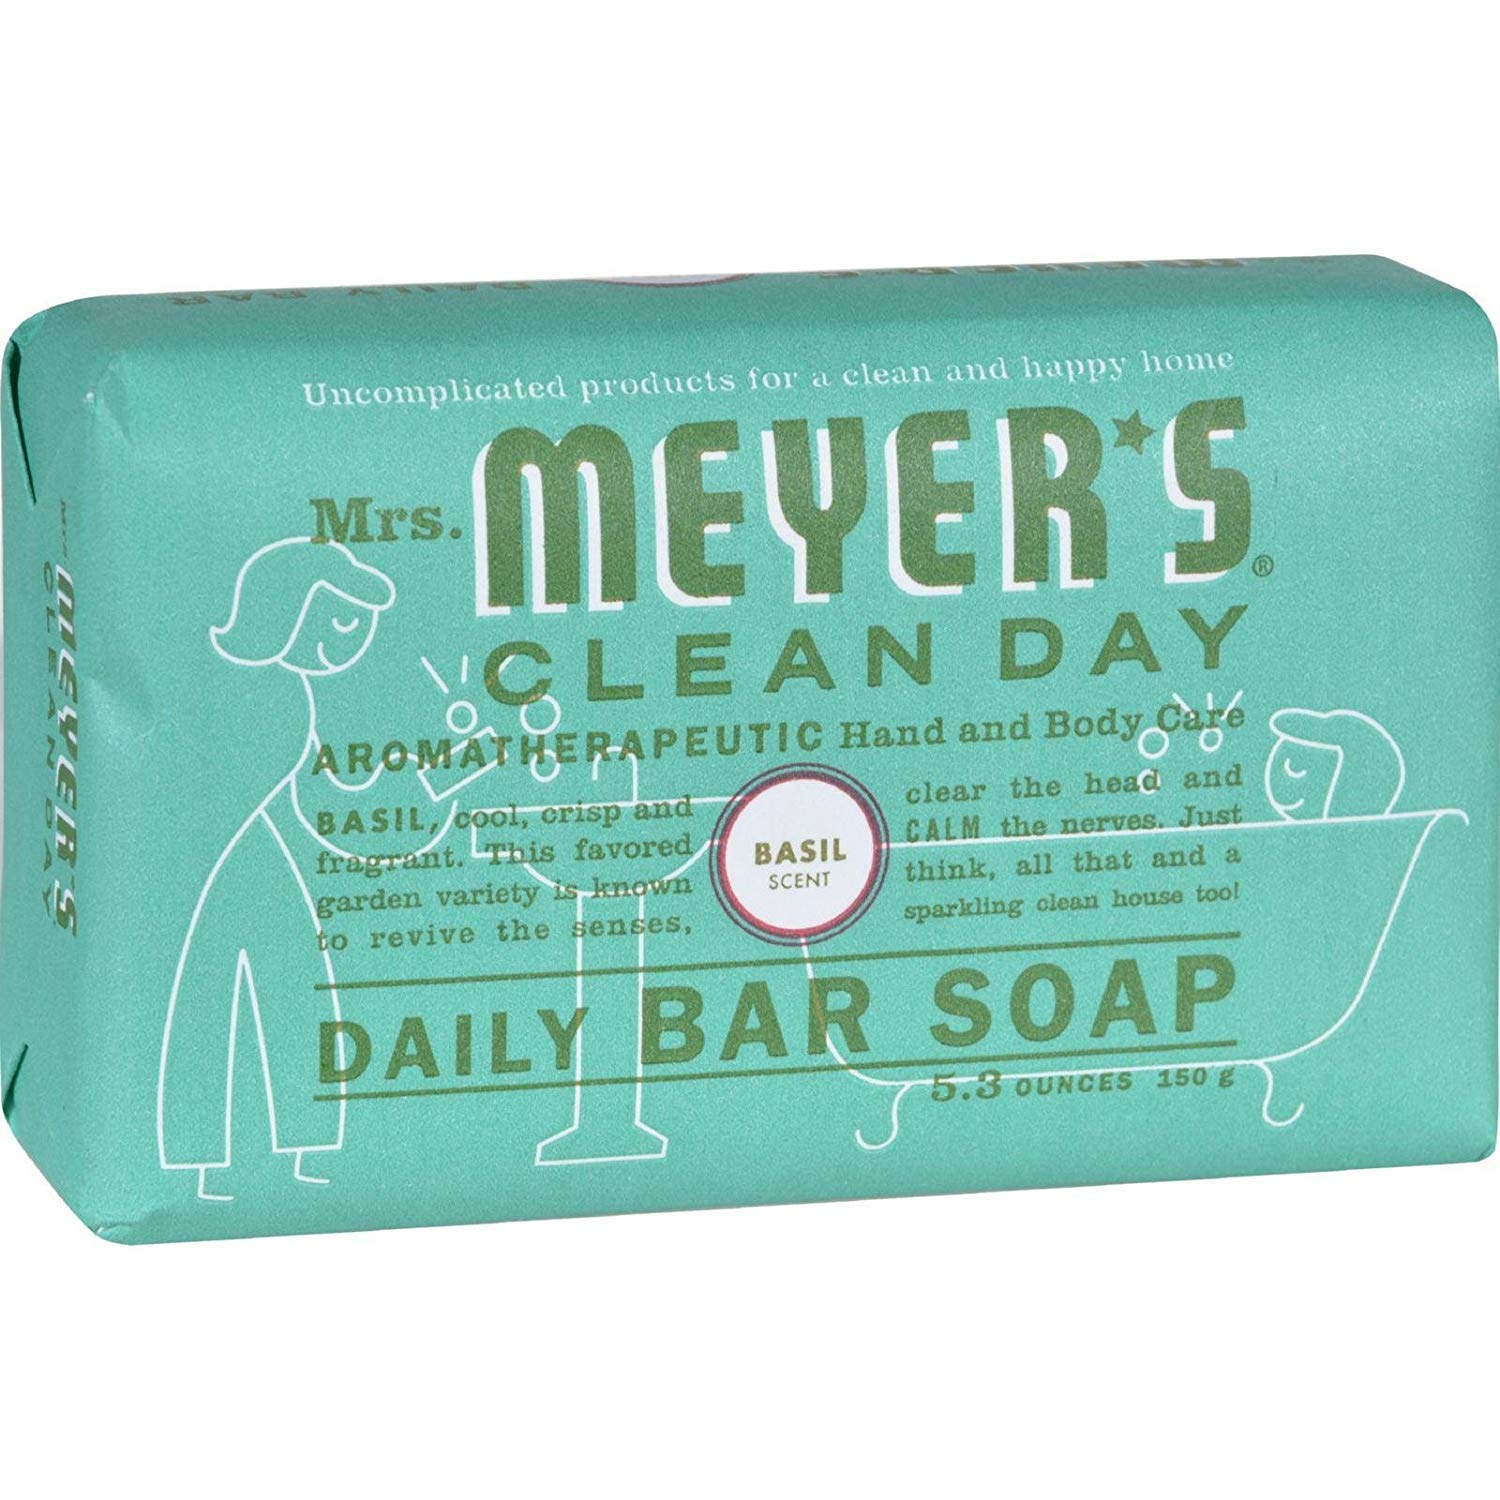 Mrs. Meyer's Clean Day Daily Bar Soap, 5.3 oz, (Basil, Pack of 1), [wellica]